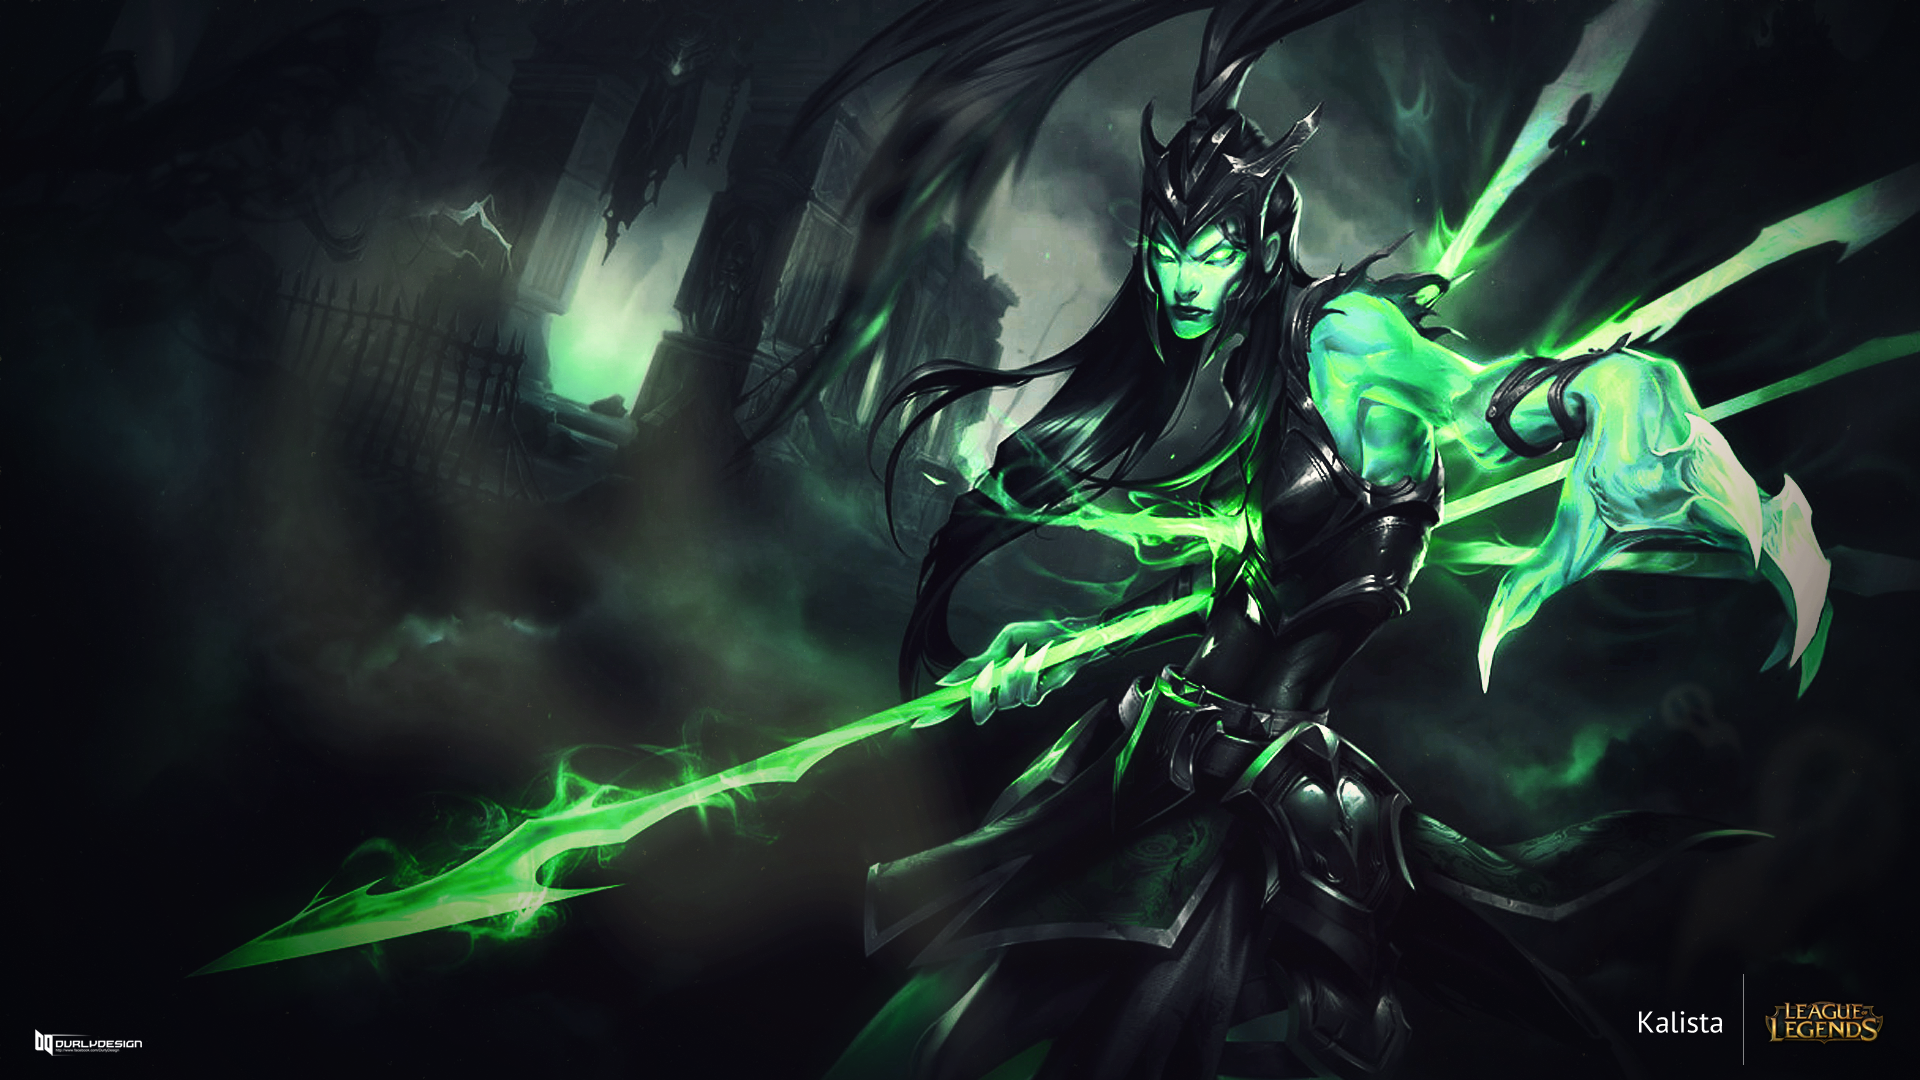 Kalista League Of Legends Minimalist Wallpaper By: League Of Legends / Kalista Wallpaper By Durly0505 On